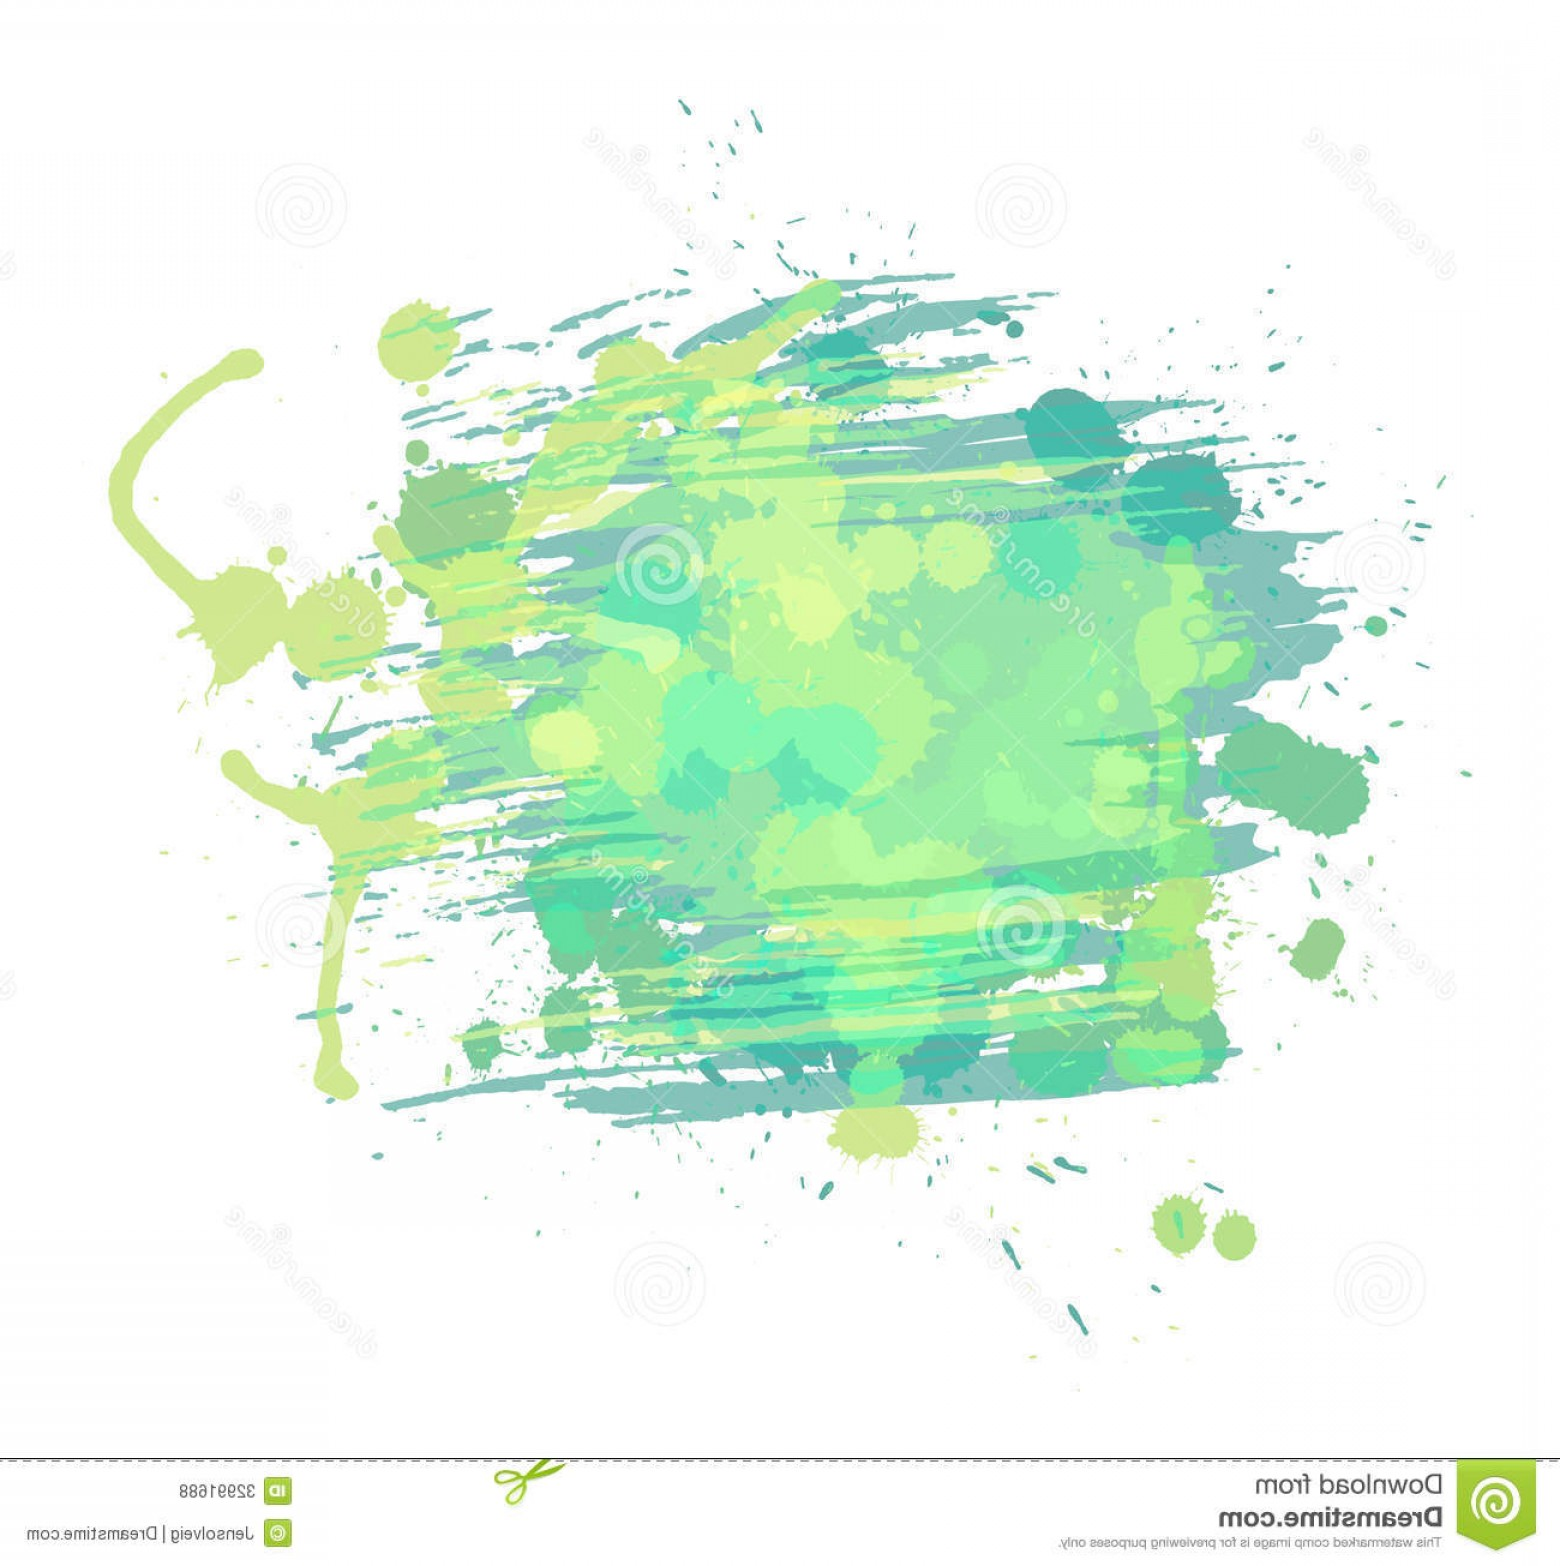 Watercolor Vector Background Free: Royalty Free Stock Photos Artistic Watercolor Vector Background Light Green Blue Colors Image